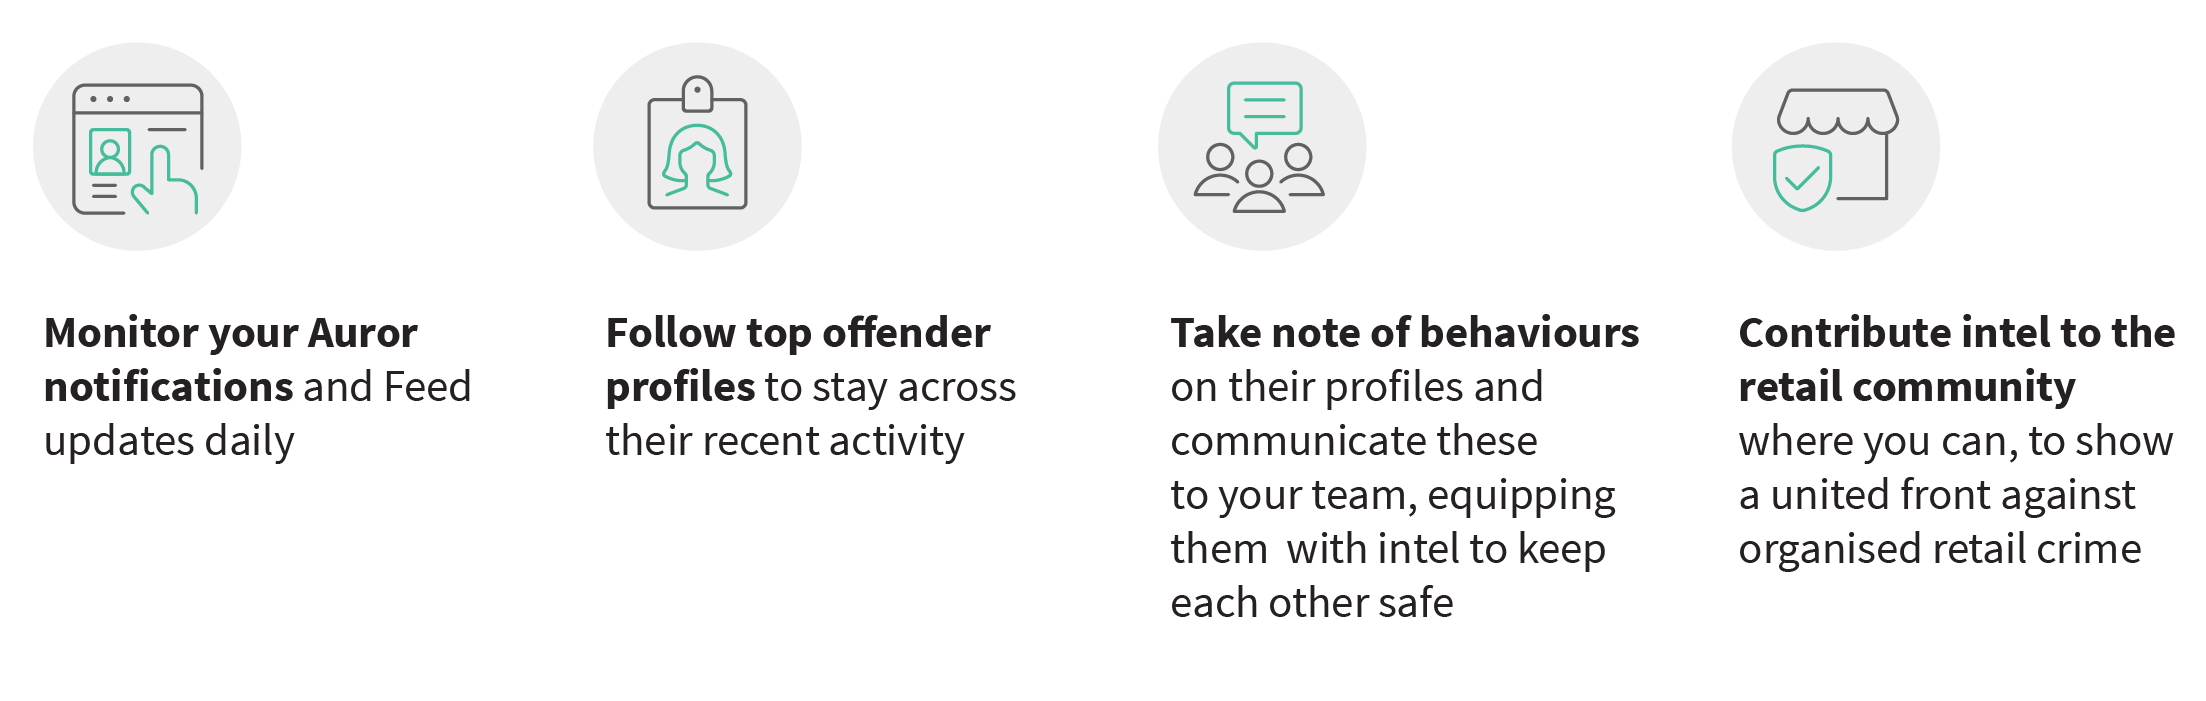 Top tips for keeping your team safe whilst preventing more retail crime in your store